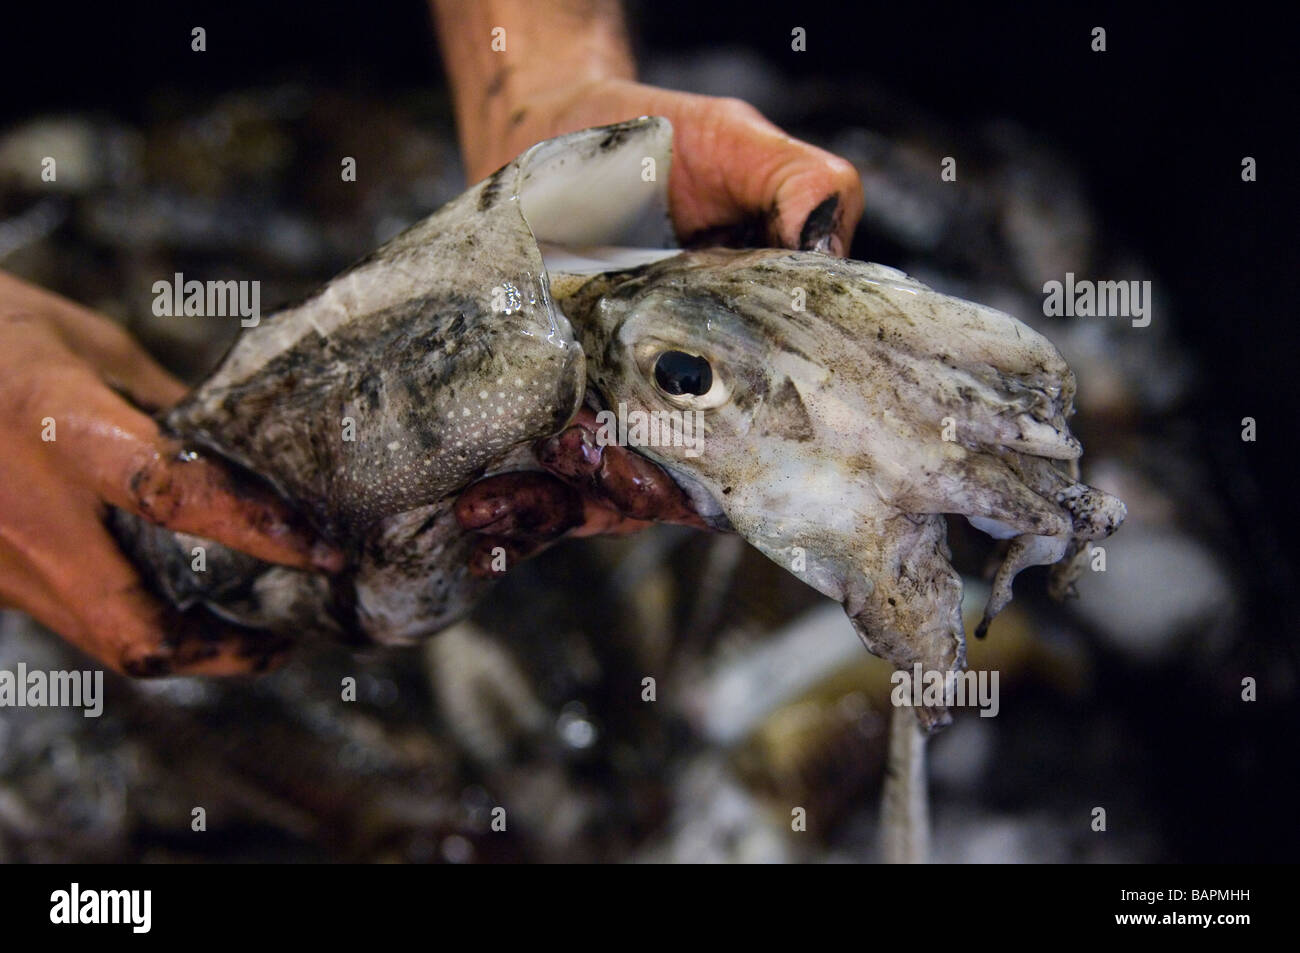 Handling a 'freshly caught' Cuttlefish at Hastings fish market. East Sussex. UK - Stock Image